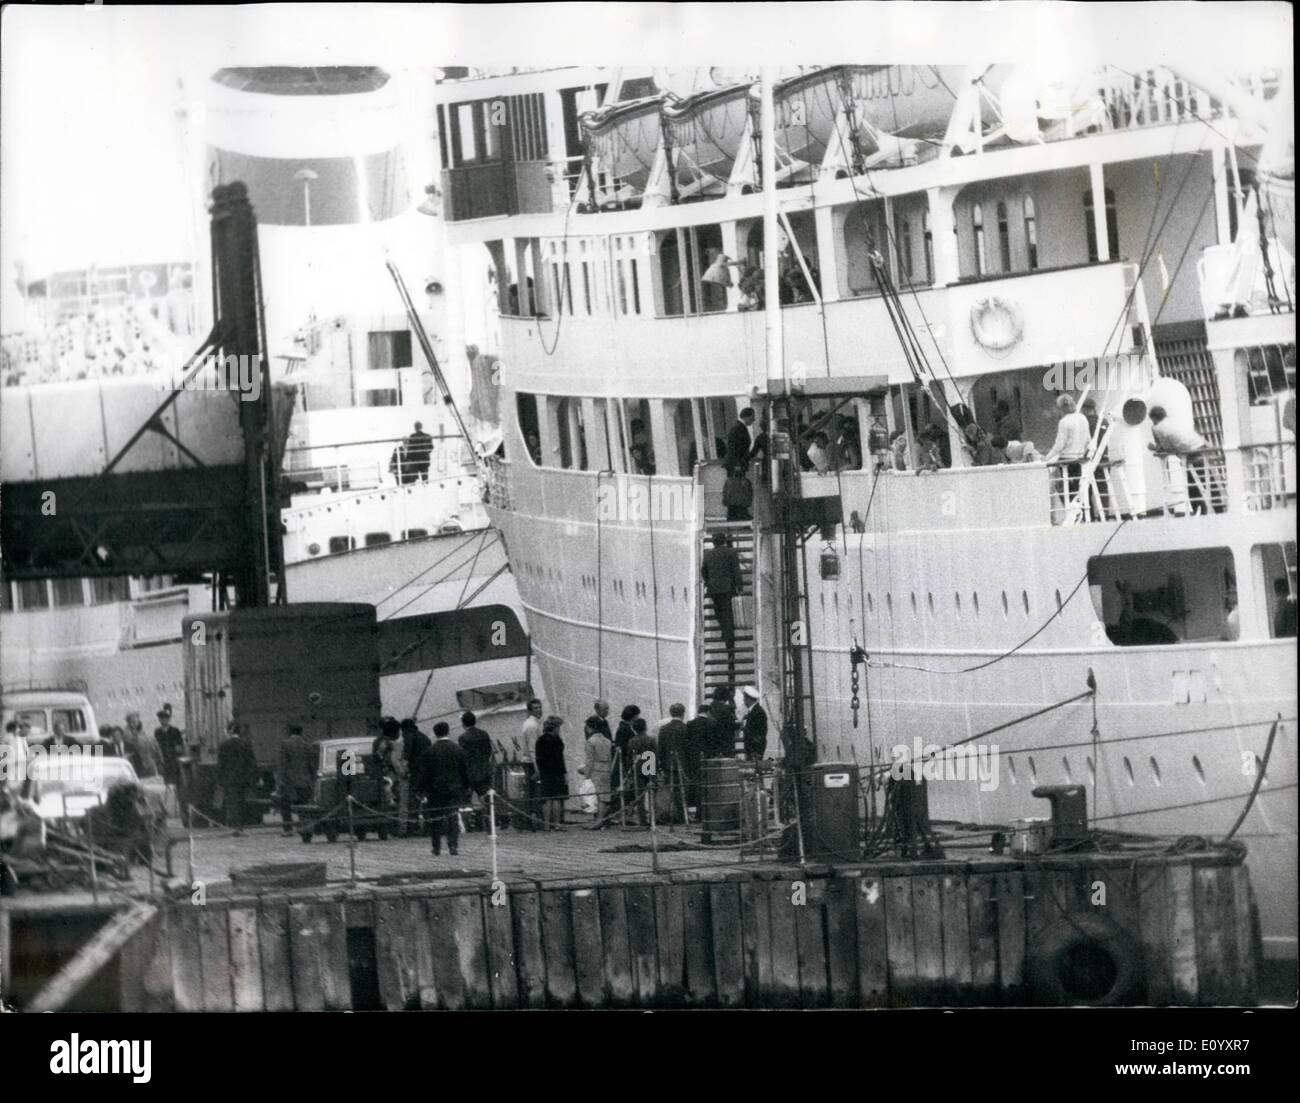 Oct. 10, 1971 - SPY RUSSIANS SAIL HOME IN CRUISE LINER. About 70 of the 90 officials expelled by Britain for spying sailed home yesterday in a Russian cruise liner commandeered by the Soviet Embassy. It was the 8,486-ton Baltika, which left Tilbury. Photo Shows:- Homeward bound - Russians expelled in the British government's spy purge - boarding the cruise liner Baltika, which sailed from Tilbury yesterday. - Stock Image